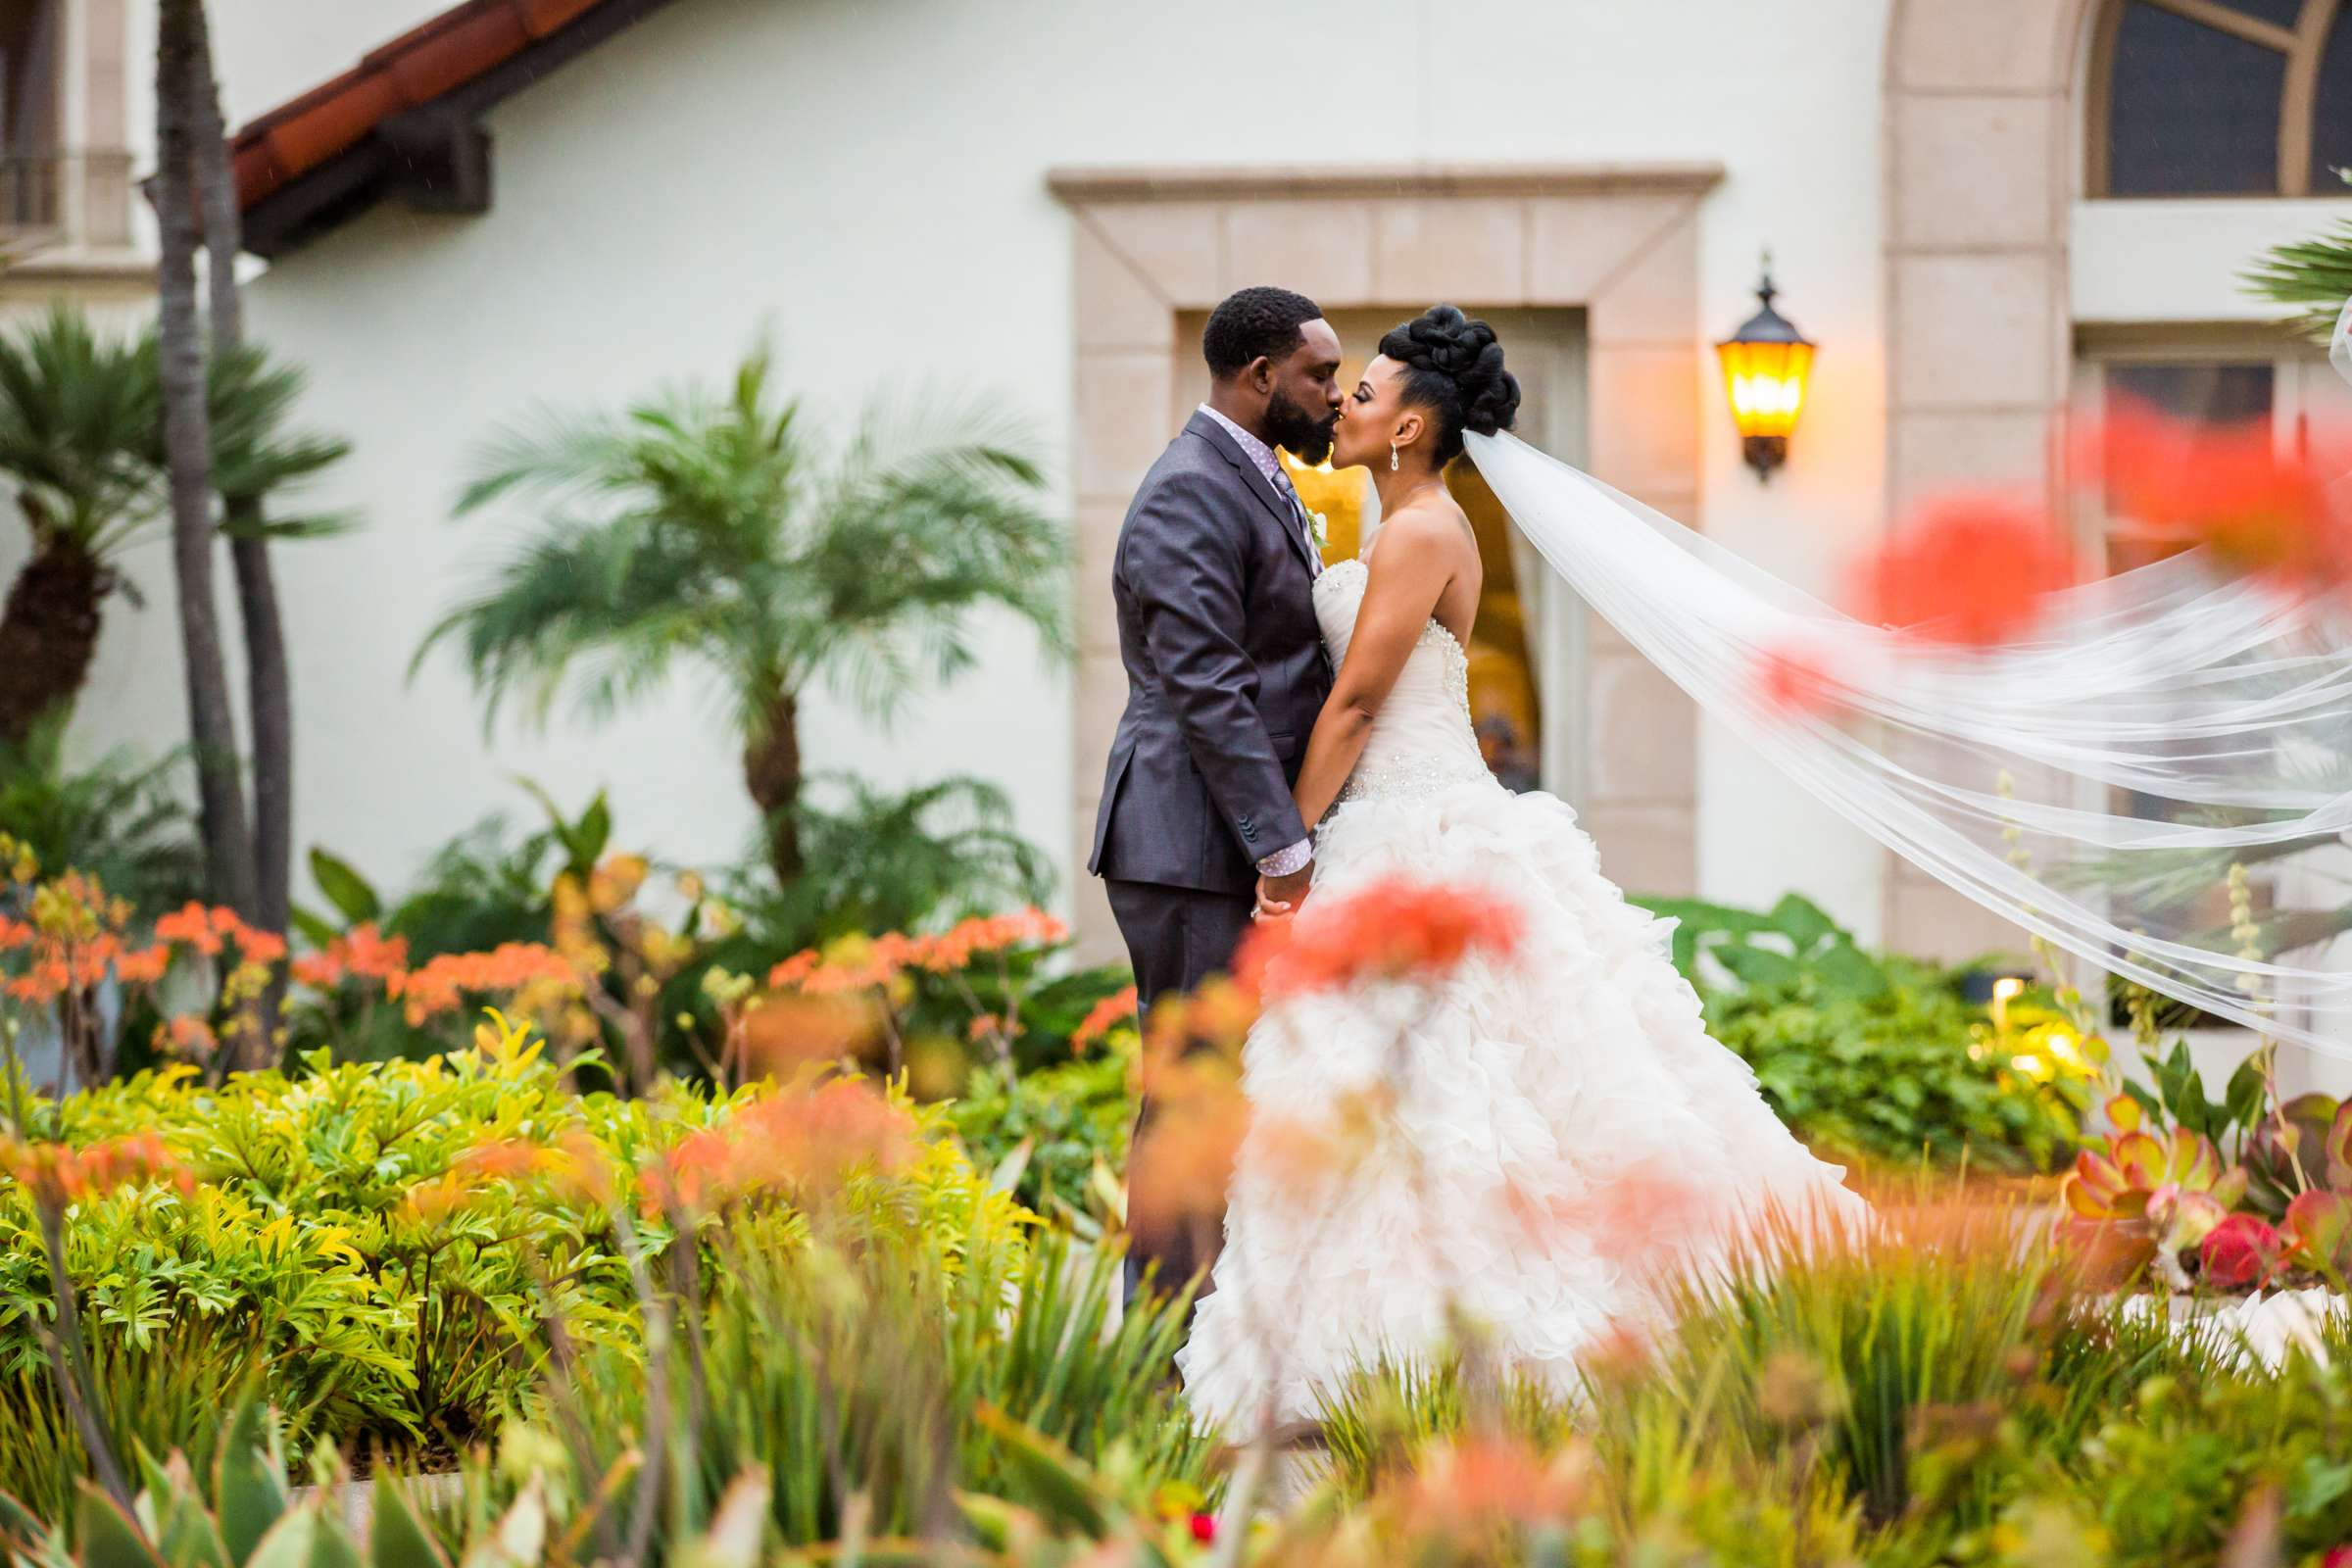 Kona Kai Resort Wedding, Crystal and Terry Wedding Photo #1 by True Photography